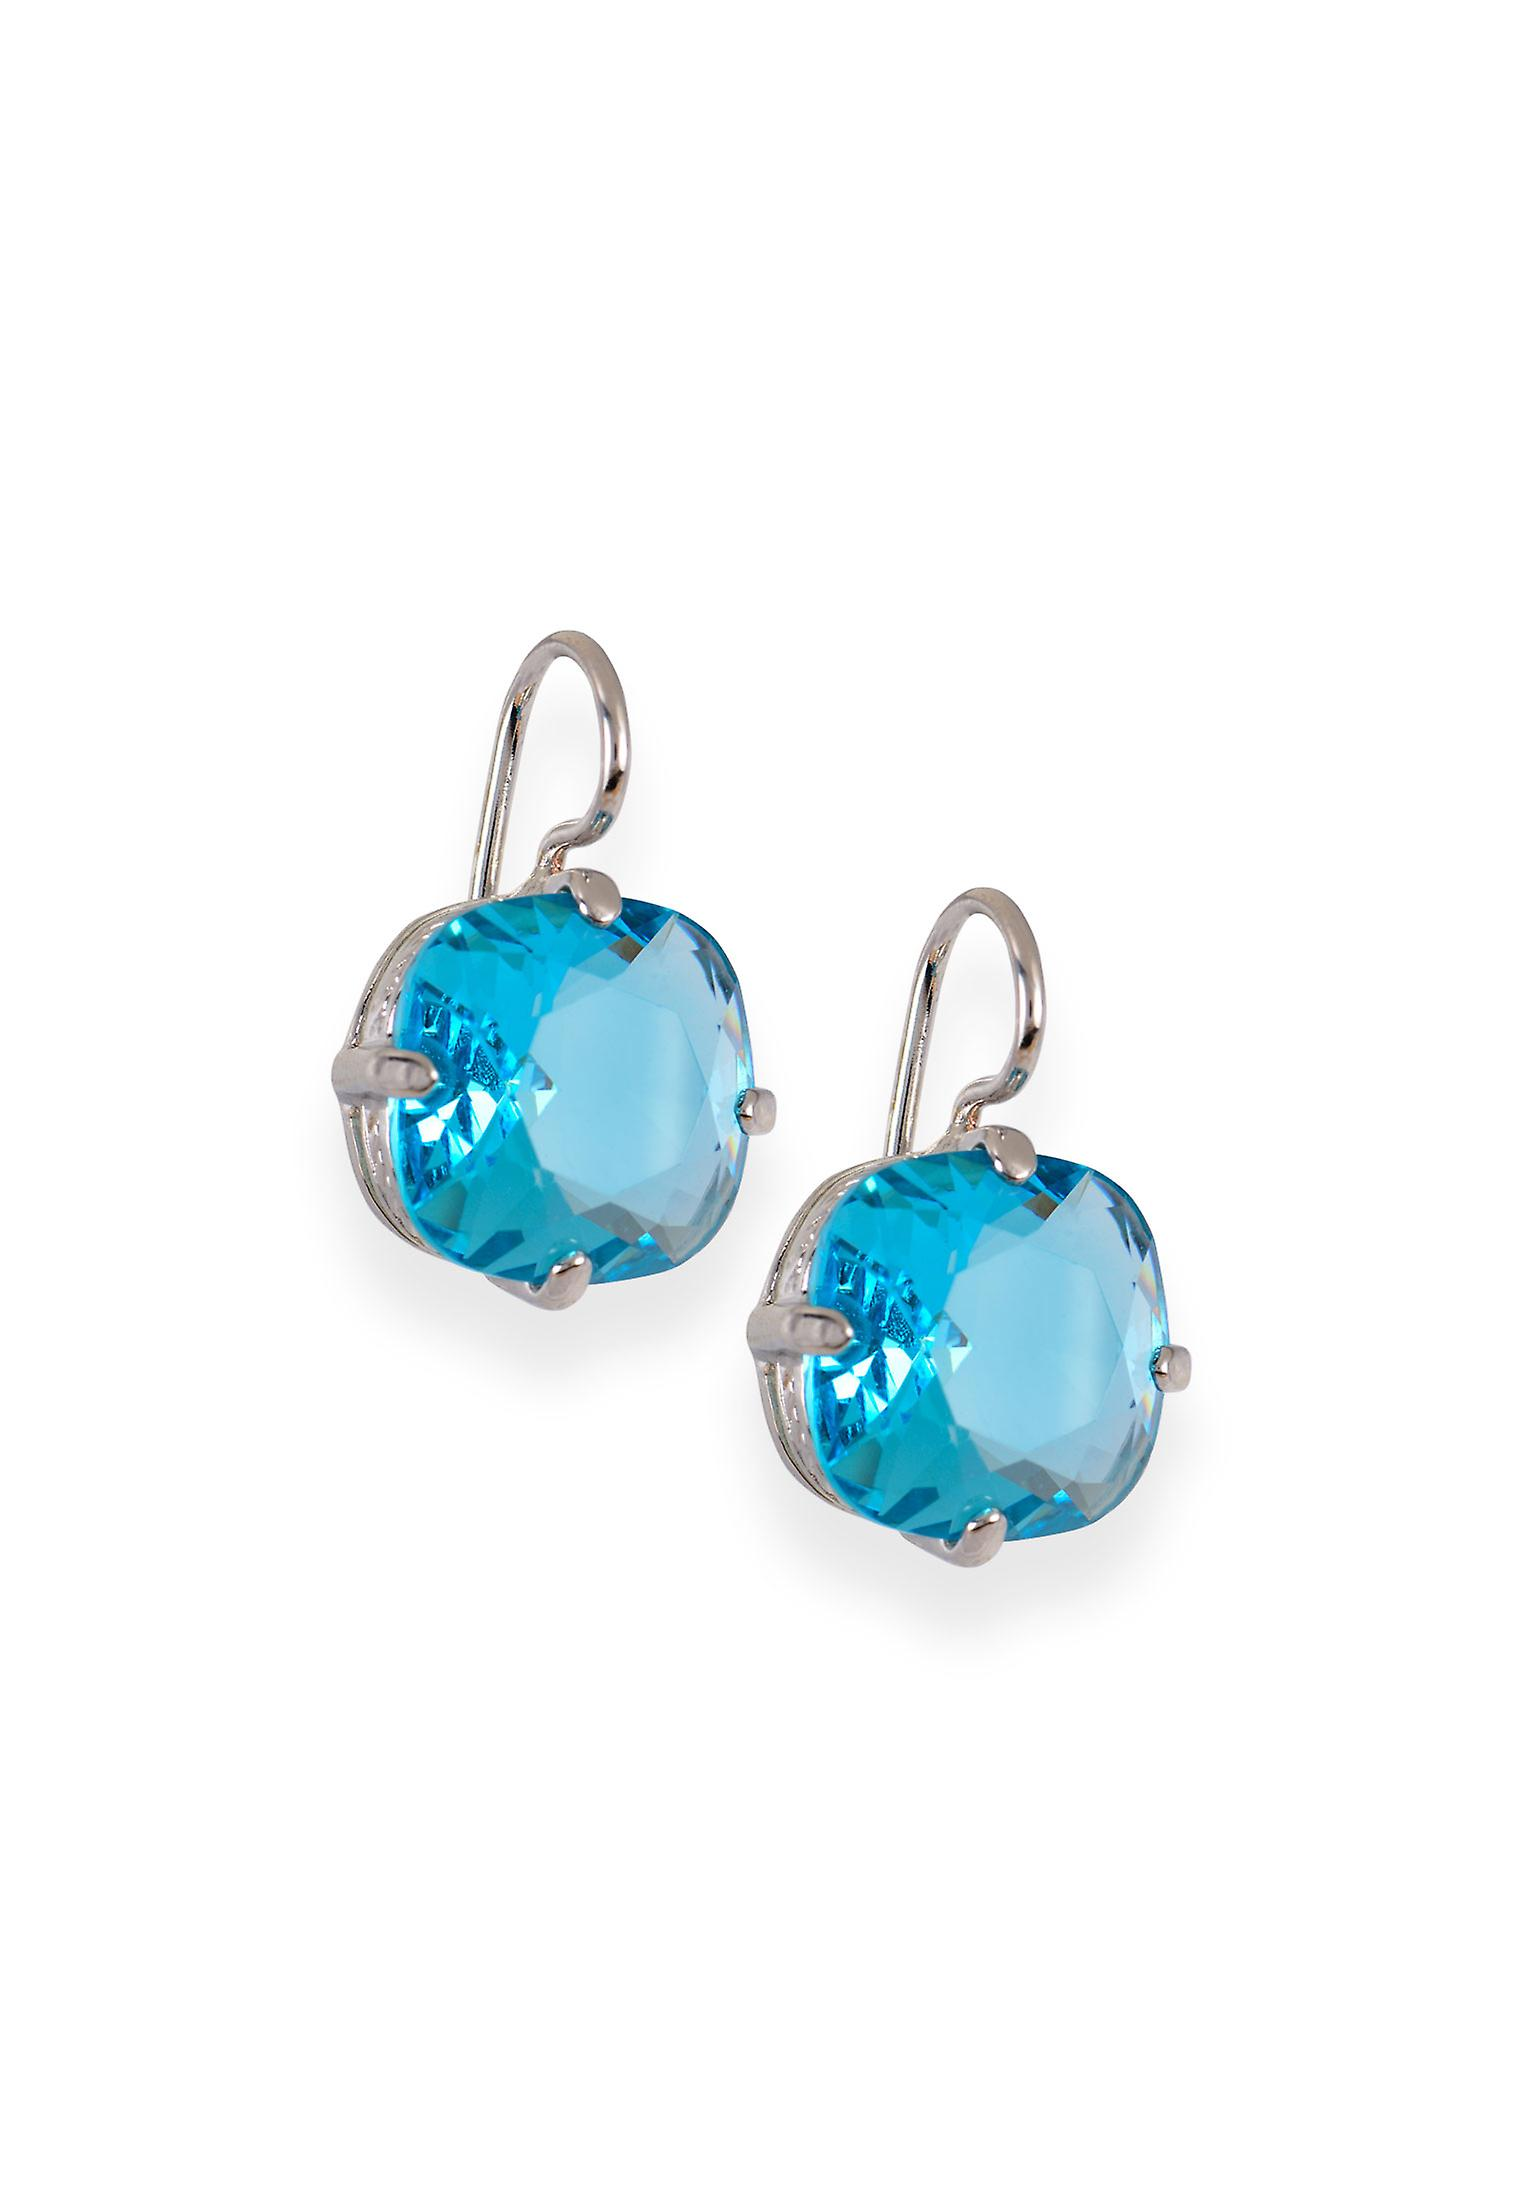 Blue earrings with crystals from Swarovski 354